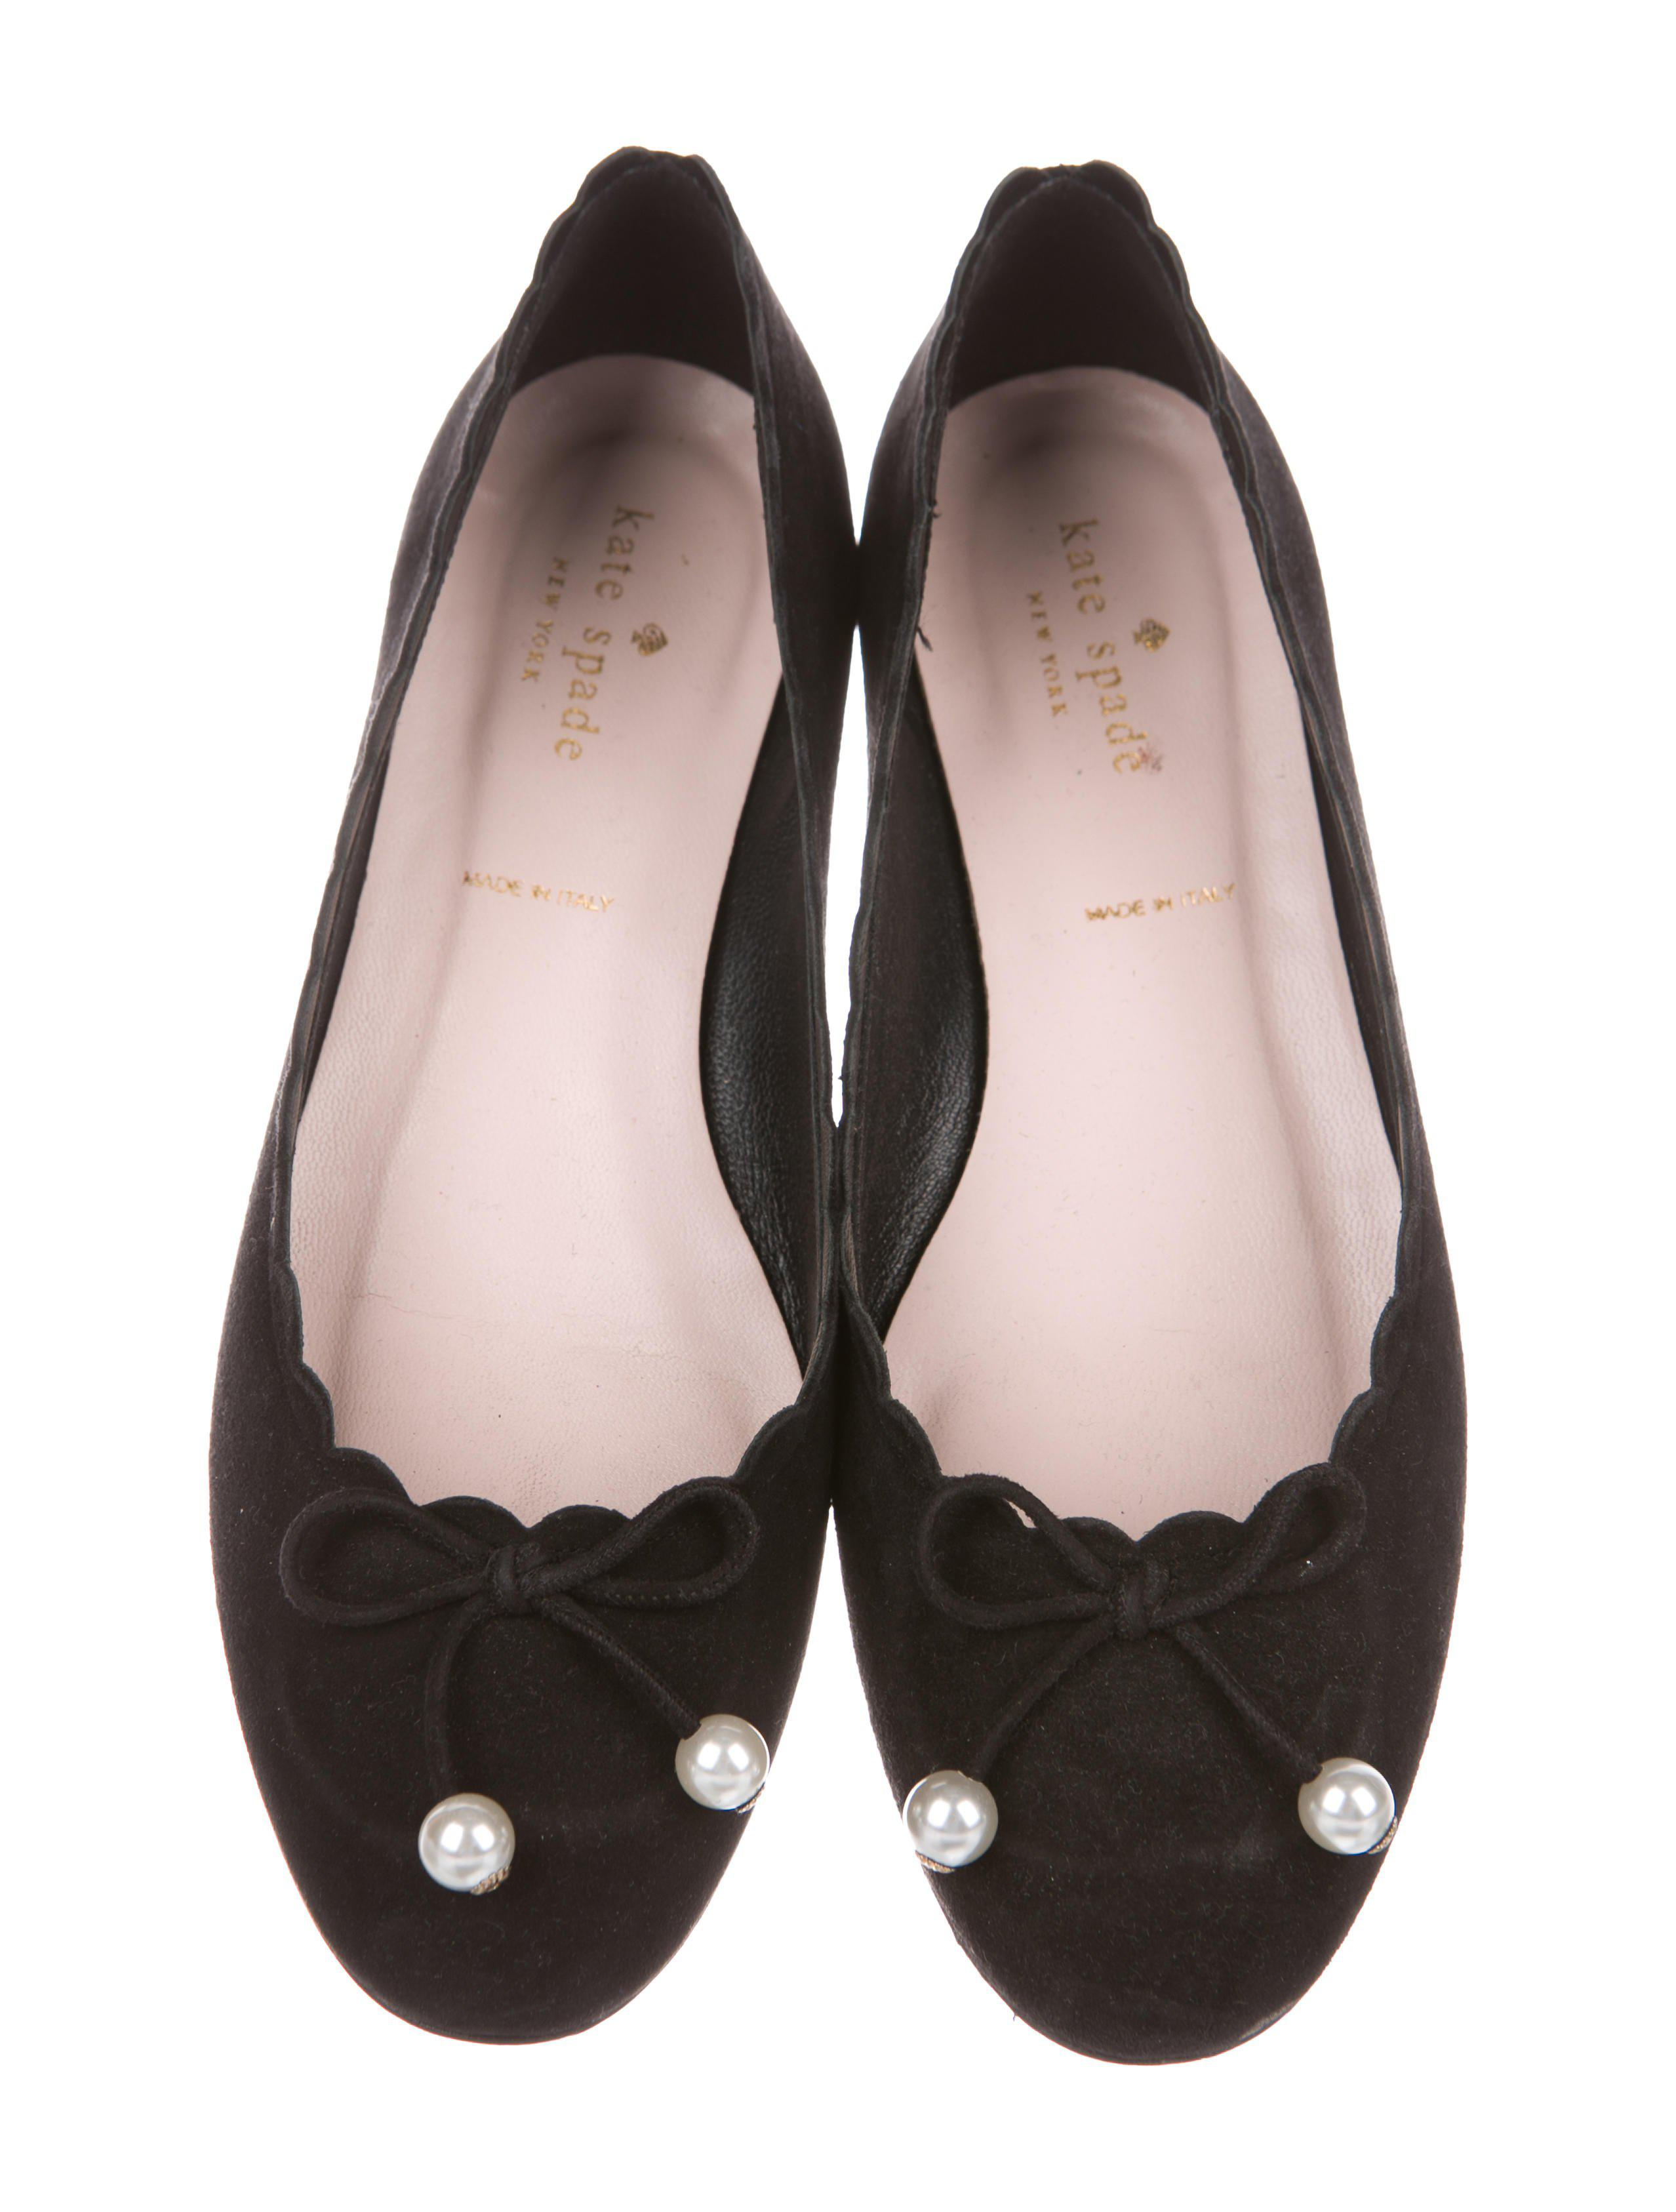 Kate Spade New York Murray Bow-Accented Flats 2015 new for sale raAB1